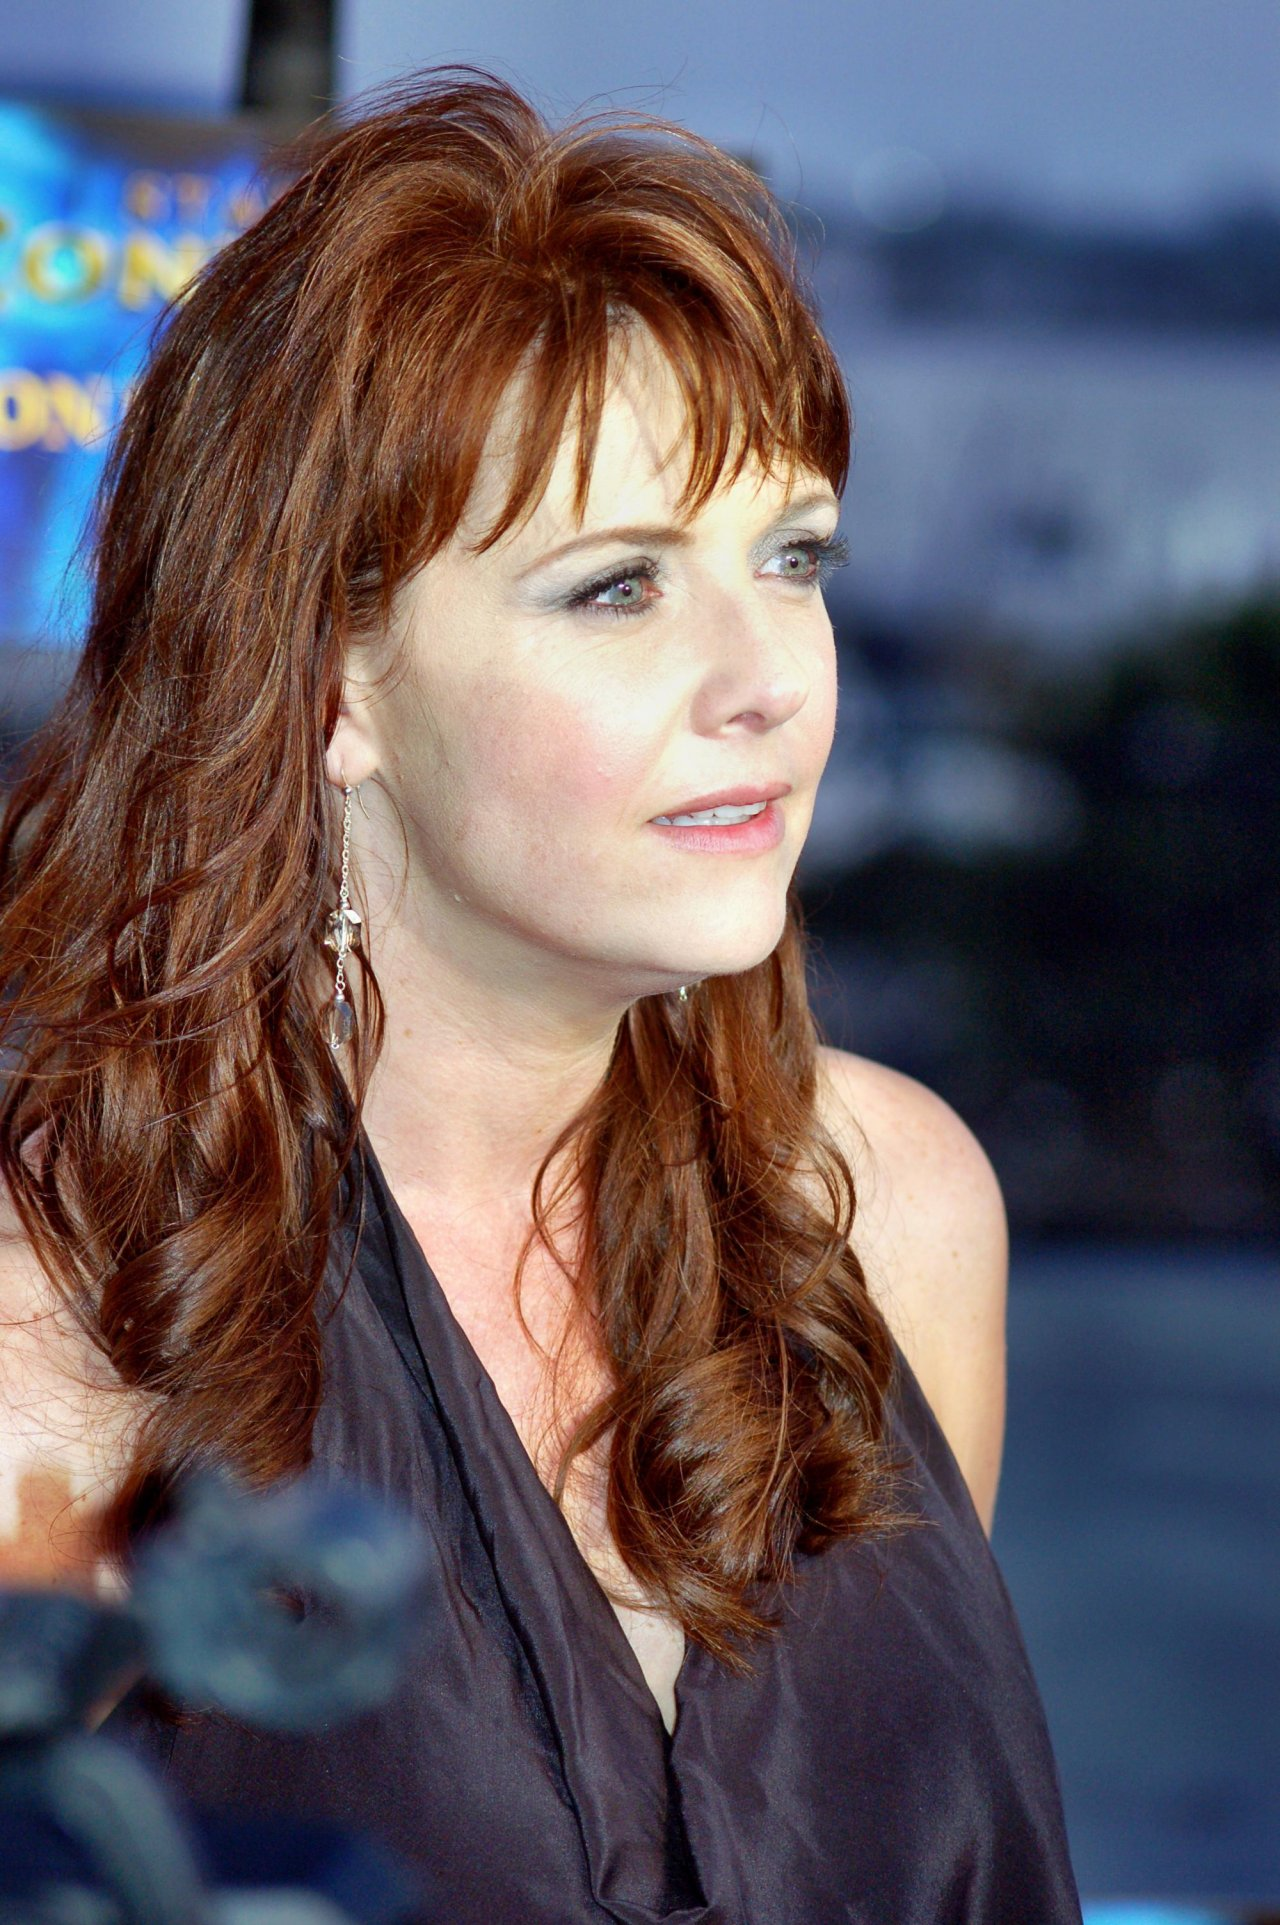 Amanda Tapping Hot Pictures Which Will Make You Fall In